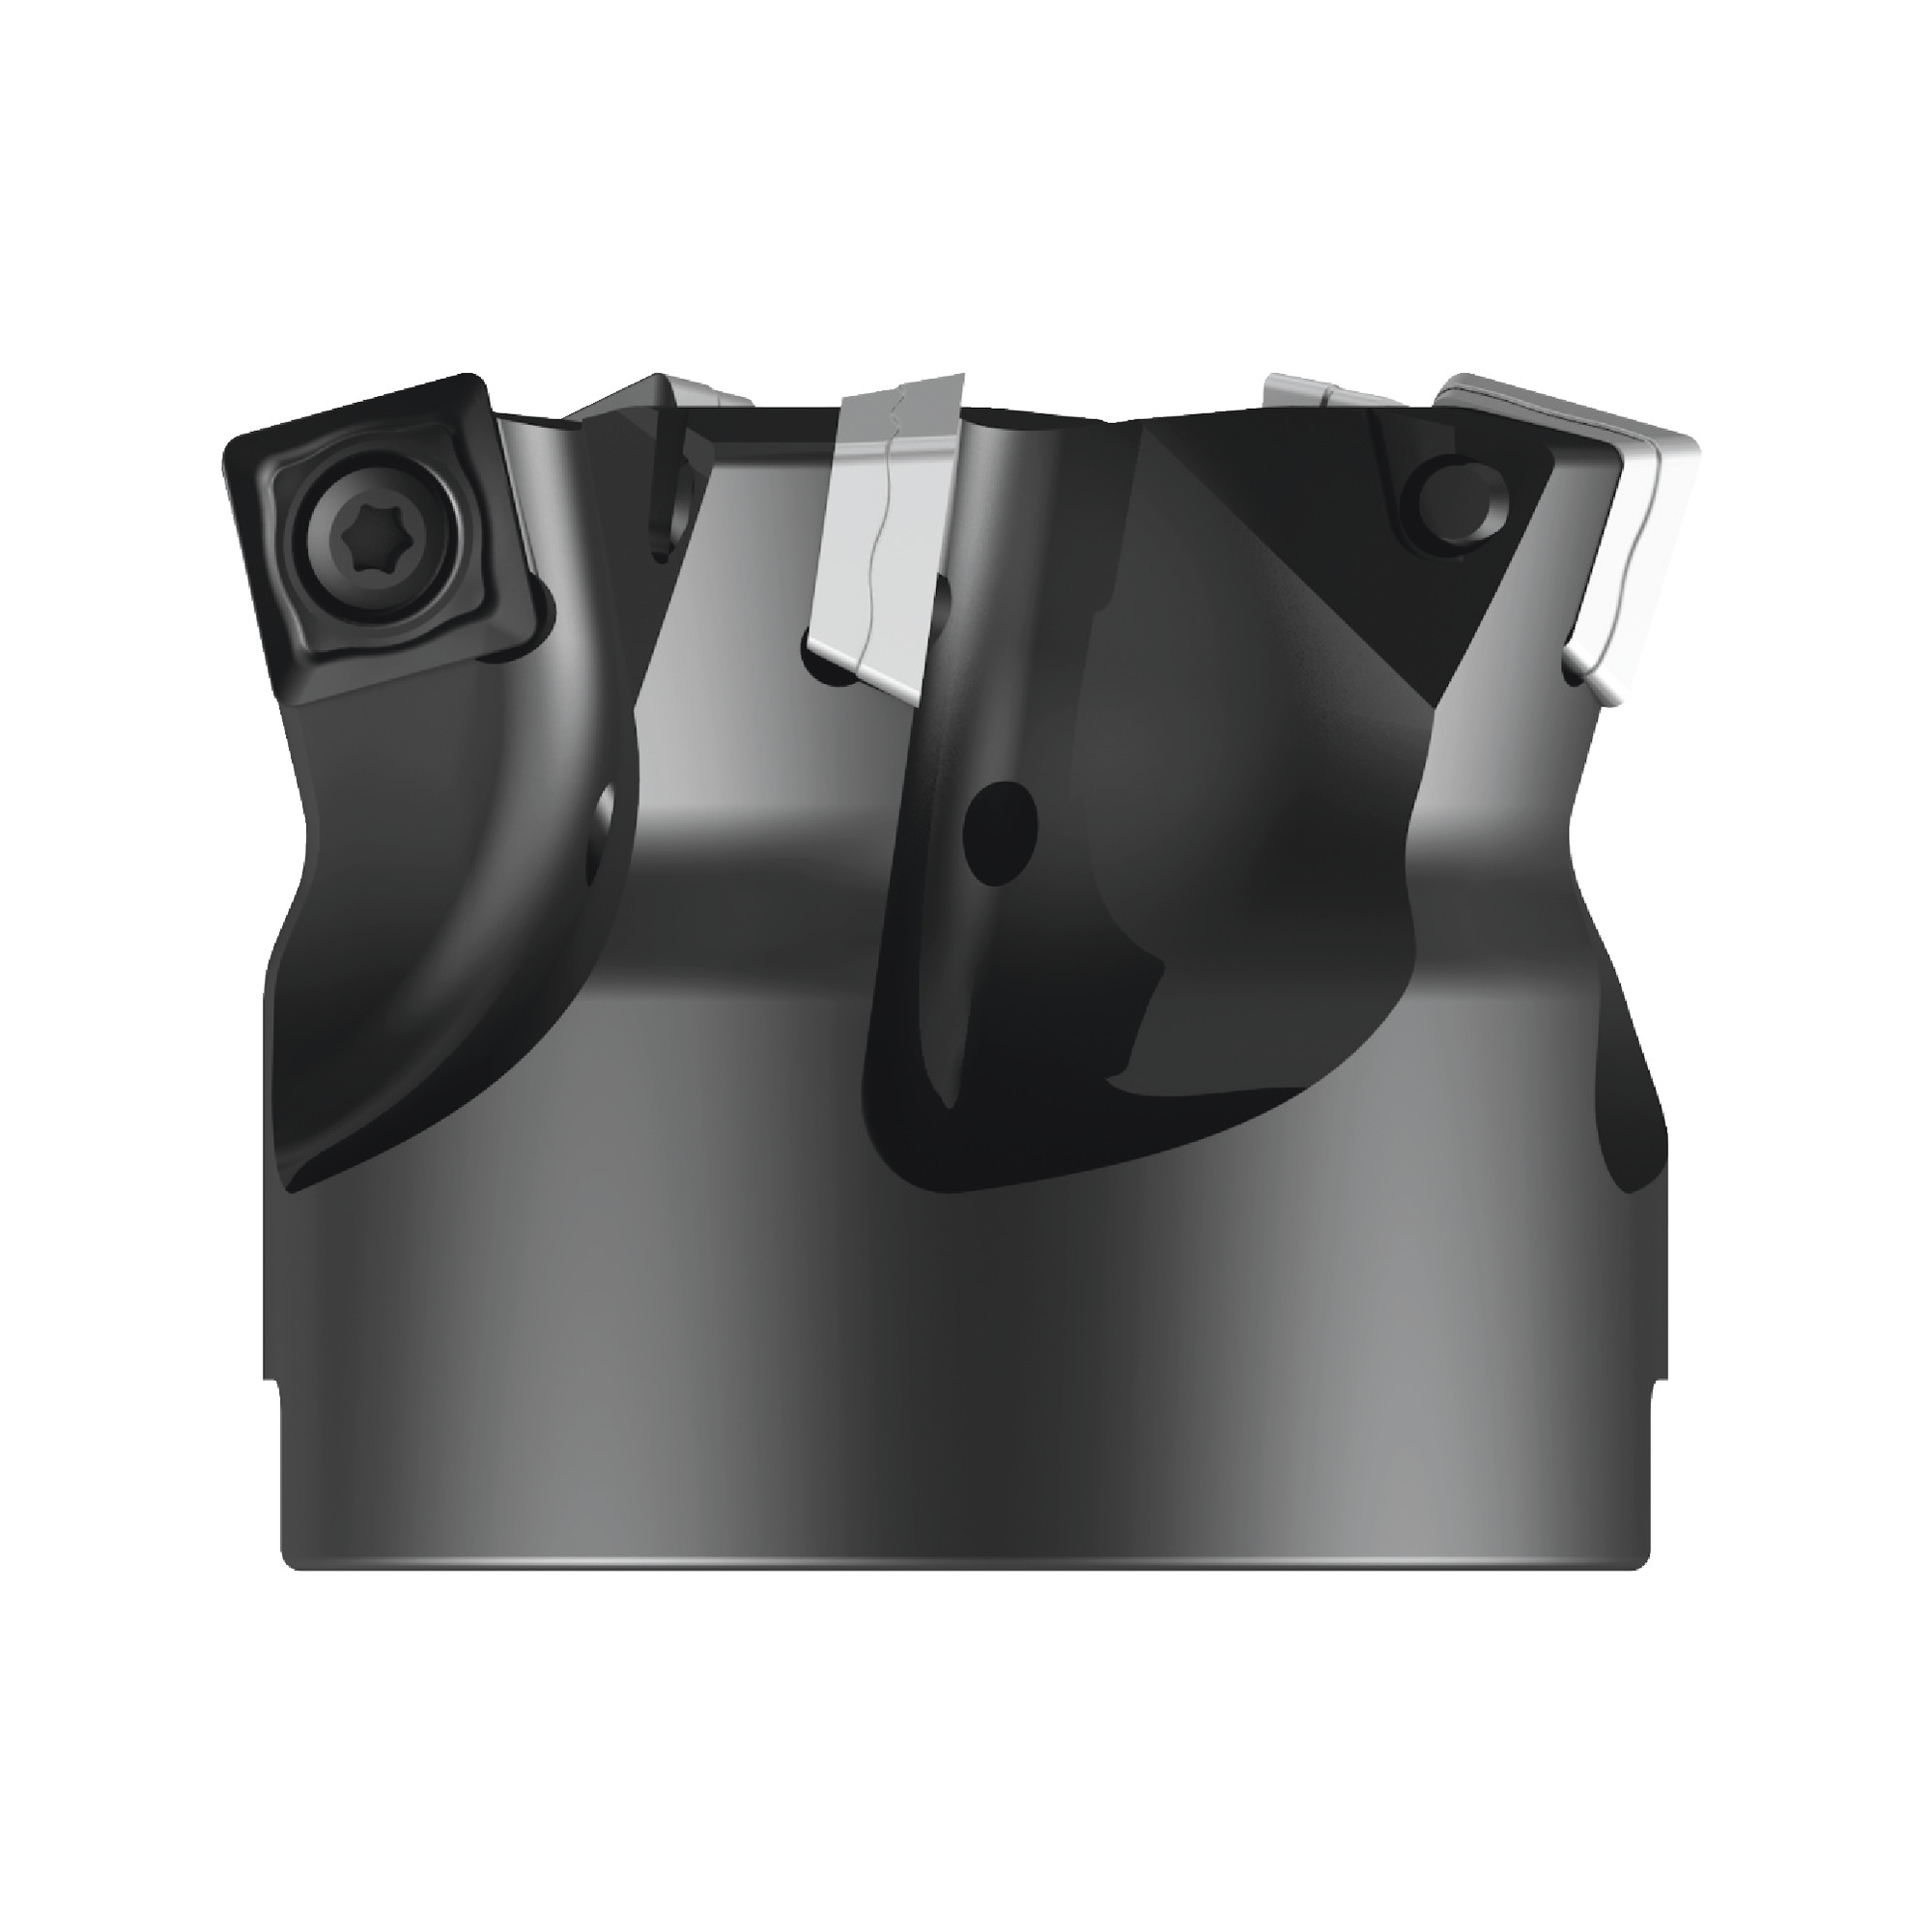 """WALTER - M4002.064-B19-05-02 / 2.500"""" High-Feed Face Mill for SDMT1204__ Inserts / Right Hand"""